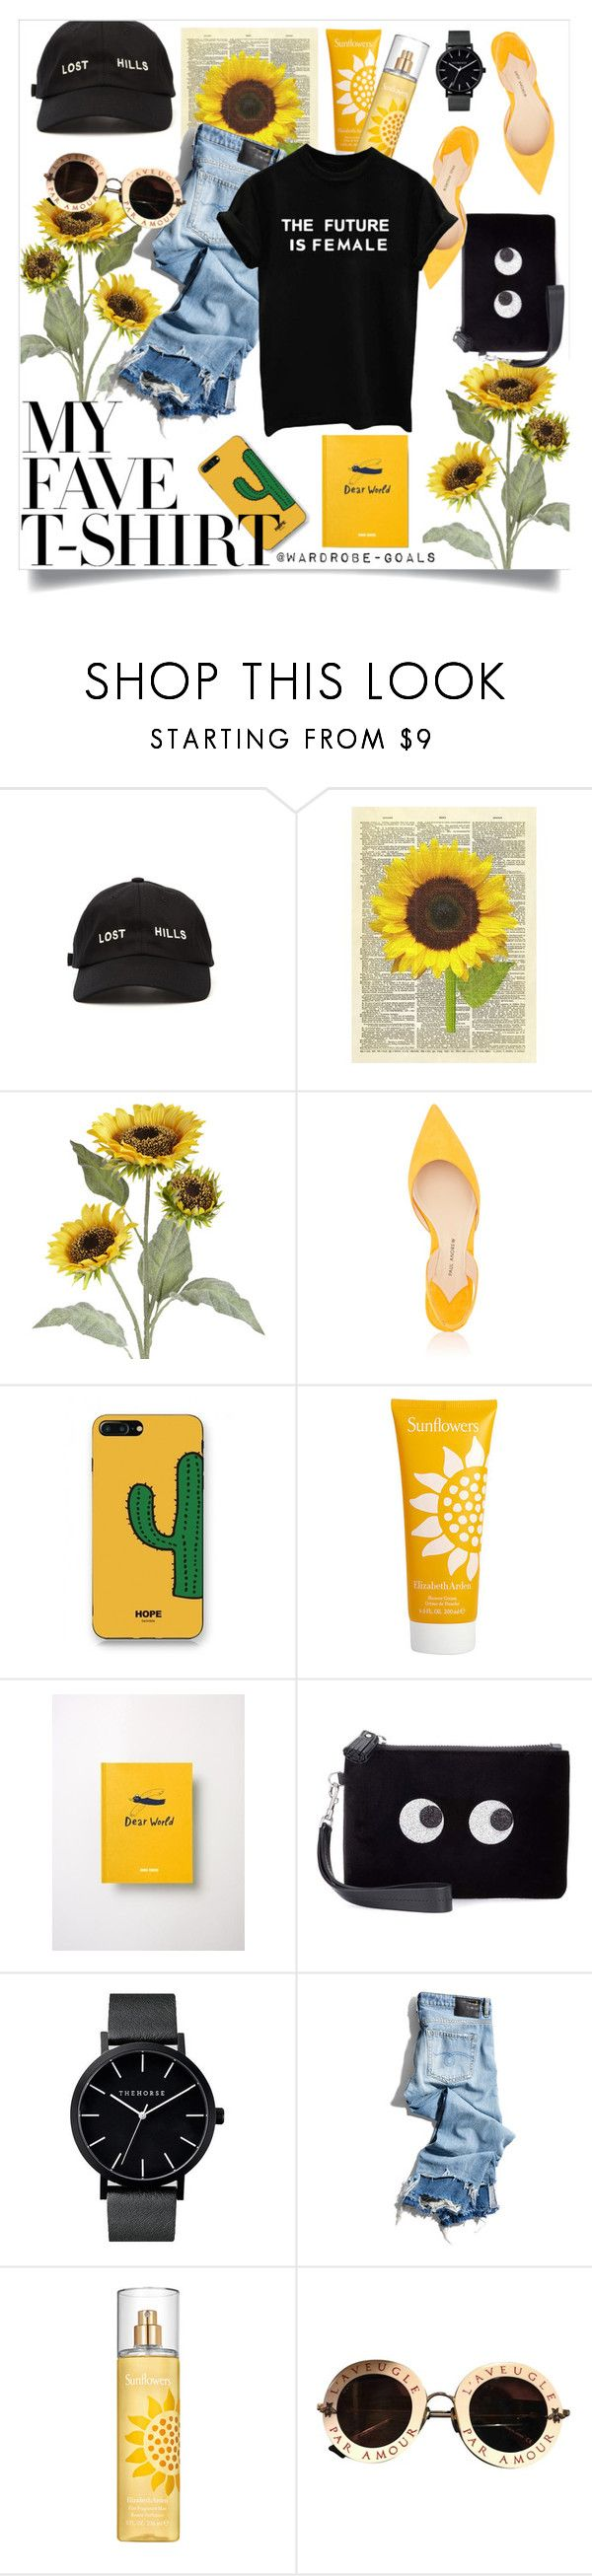 """Untitled #98"" by wardrobe-goals ❤ liked on Polyvore featuring Yeezy by Kanye West, Pier 1 Imports, Paul Andrew, WithChic, Elizabeth Arden, Bobo Choses, Anya Hindmarch, R13, Gucci and sunflowers"